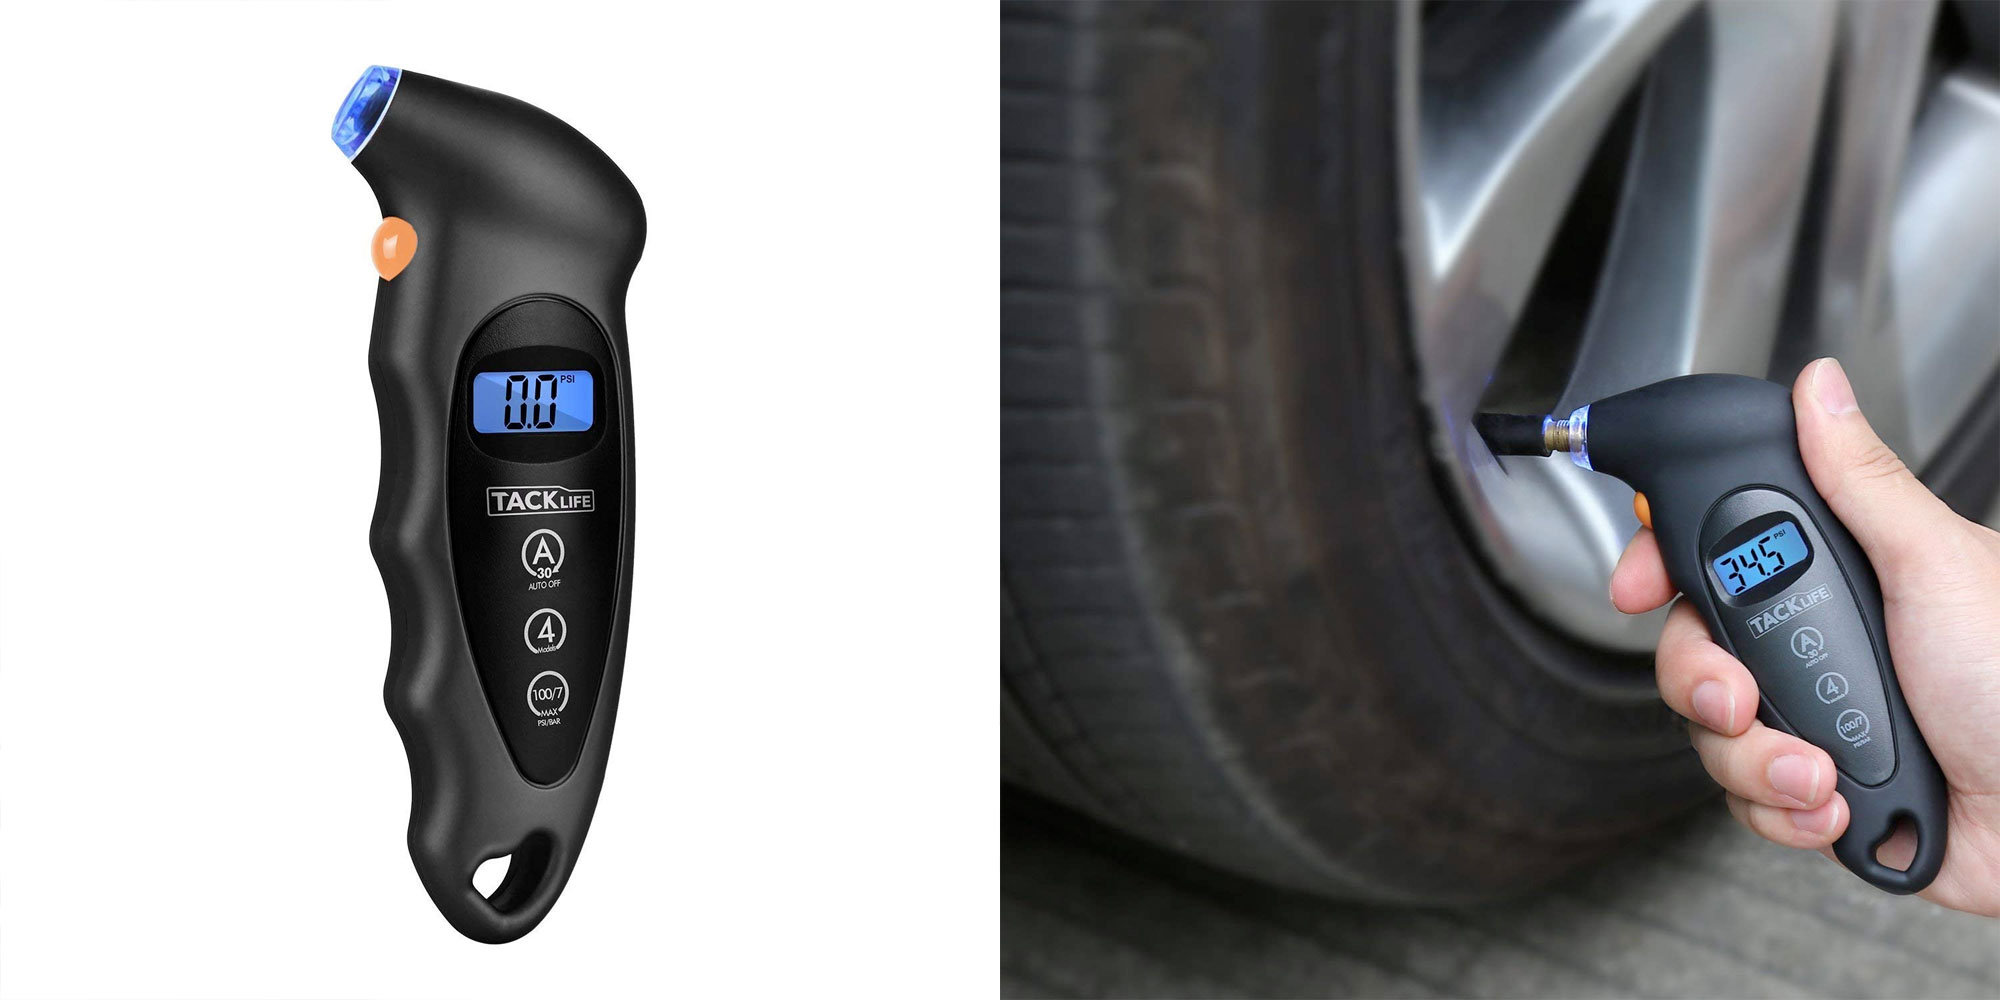 Check your tire's pressure w/ 2 of these digital gauges for $10.50 Prime shipped